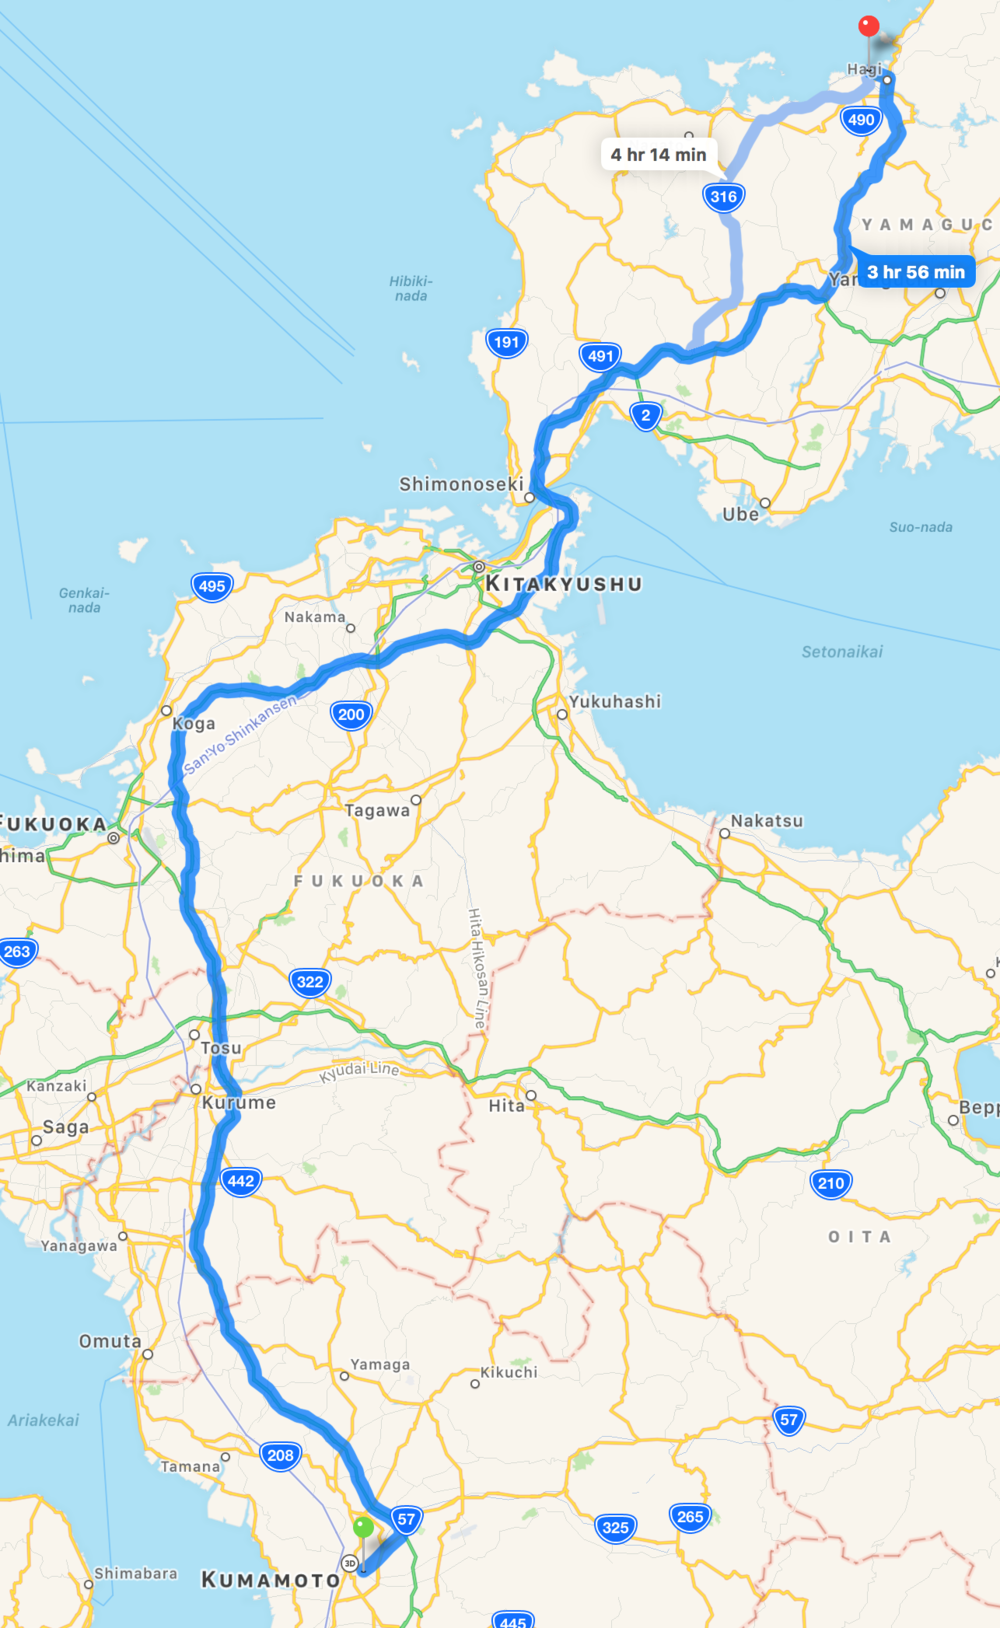 First run for the morning and early afternoon: Kumamoto to Hagi; that blue ¾ up is where the bridge from Kyushu to Honshu is located.